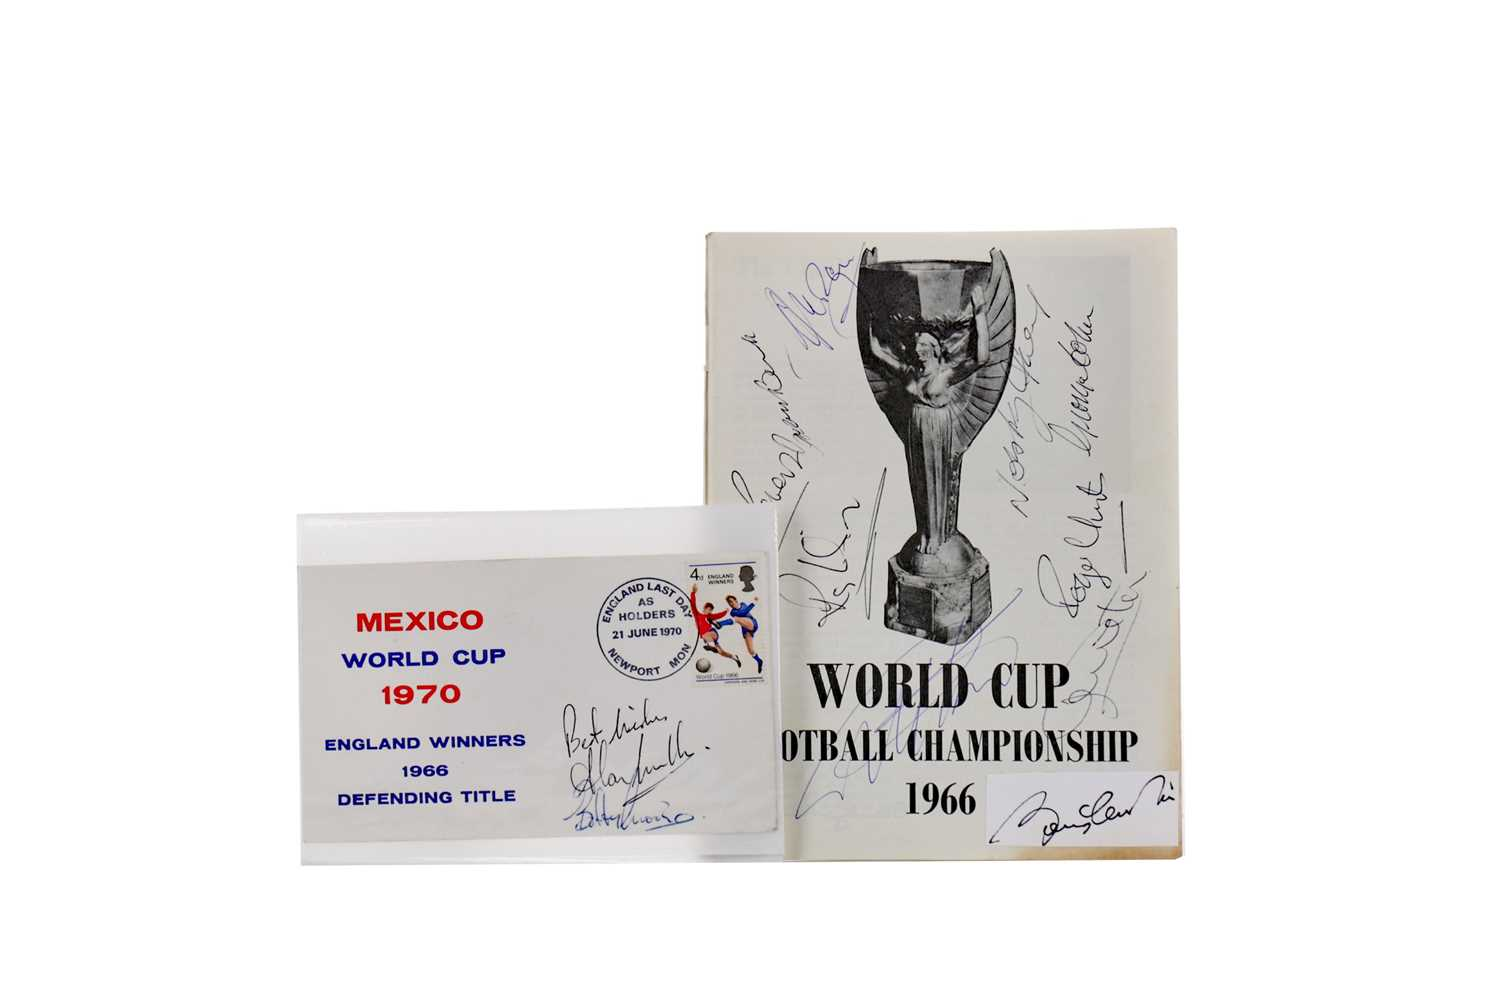 Lot 1759 - AN AUTOGRAPHED WORLD CUP FOOTBALL CHAMPIONSHIP 1966 PROGRAMME AND ANOTHER